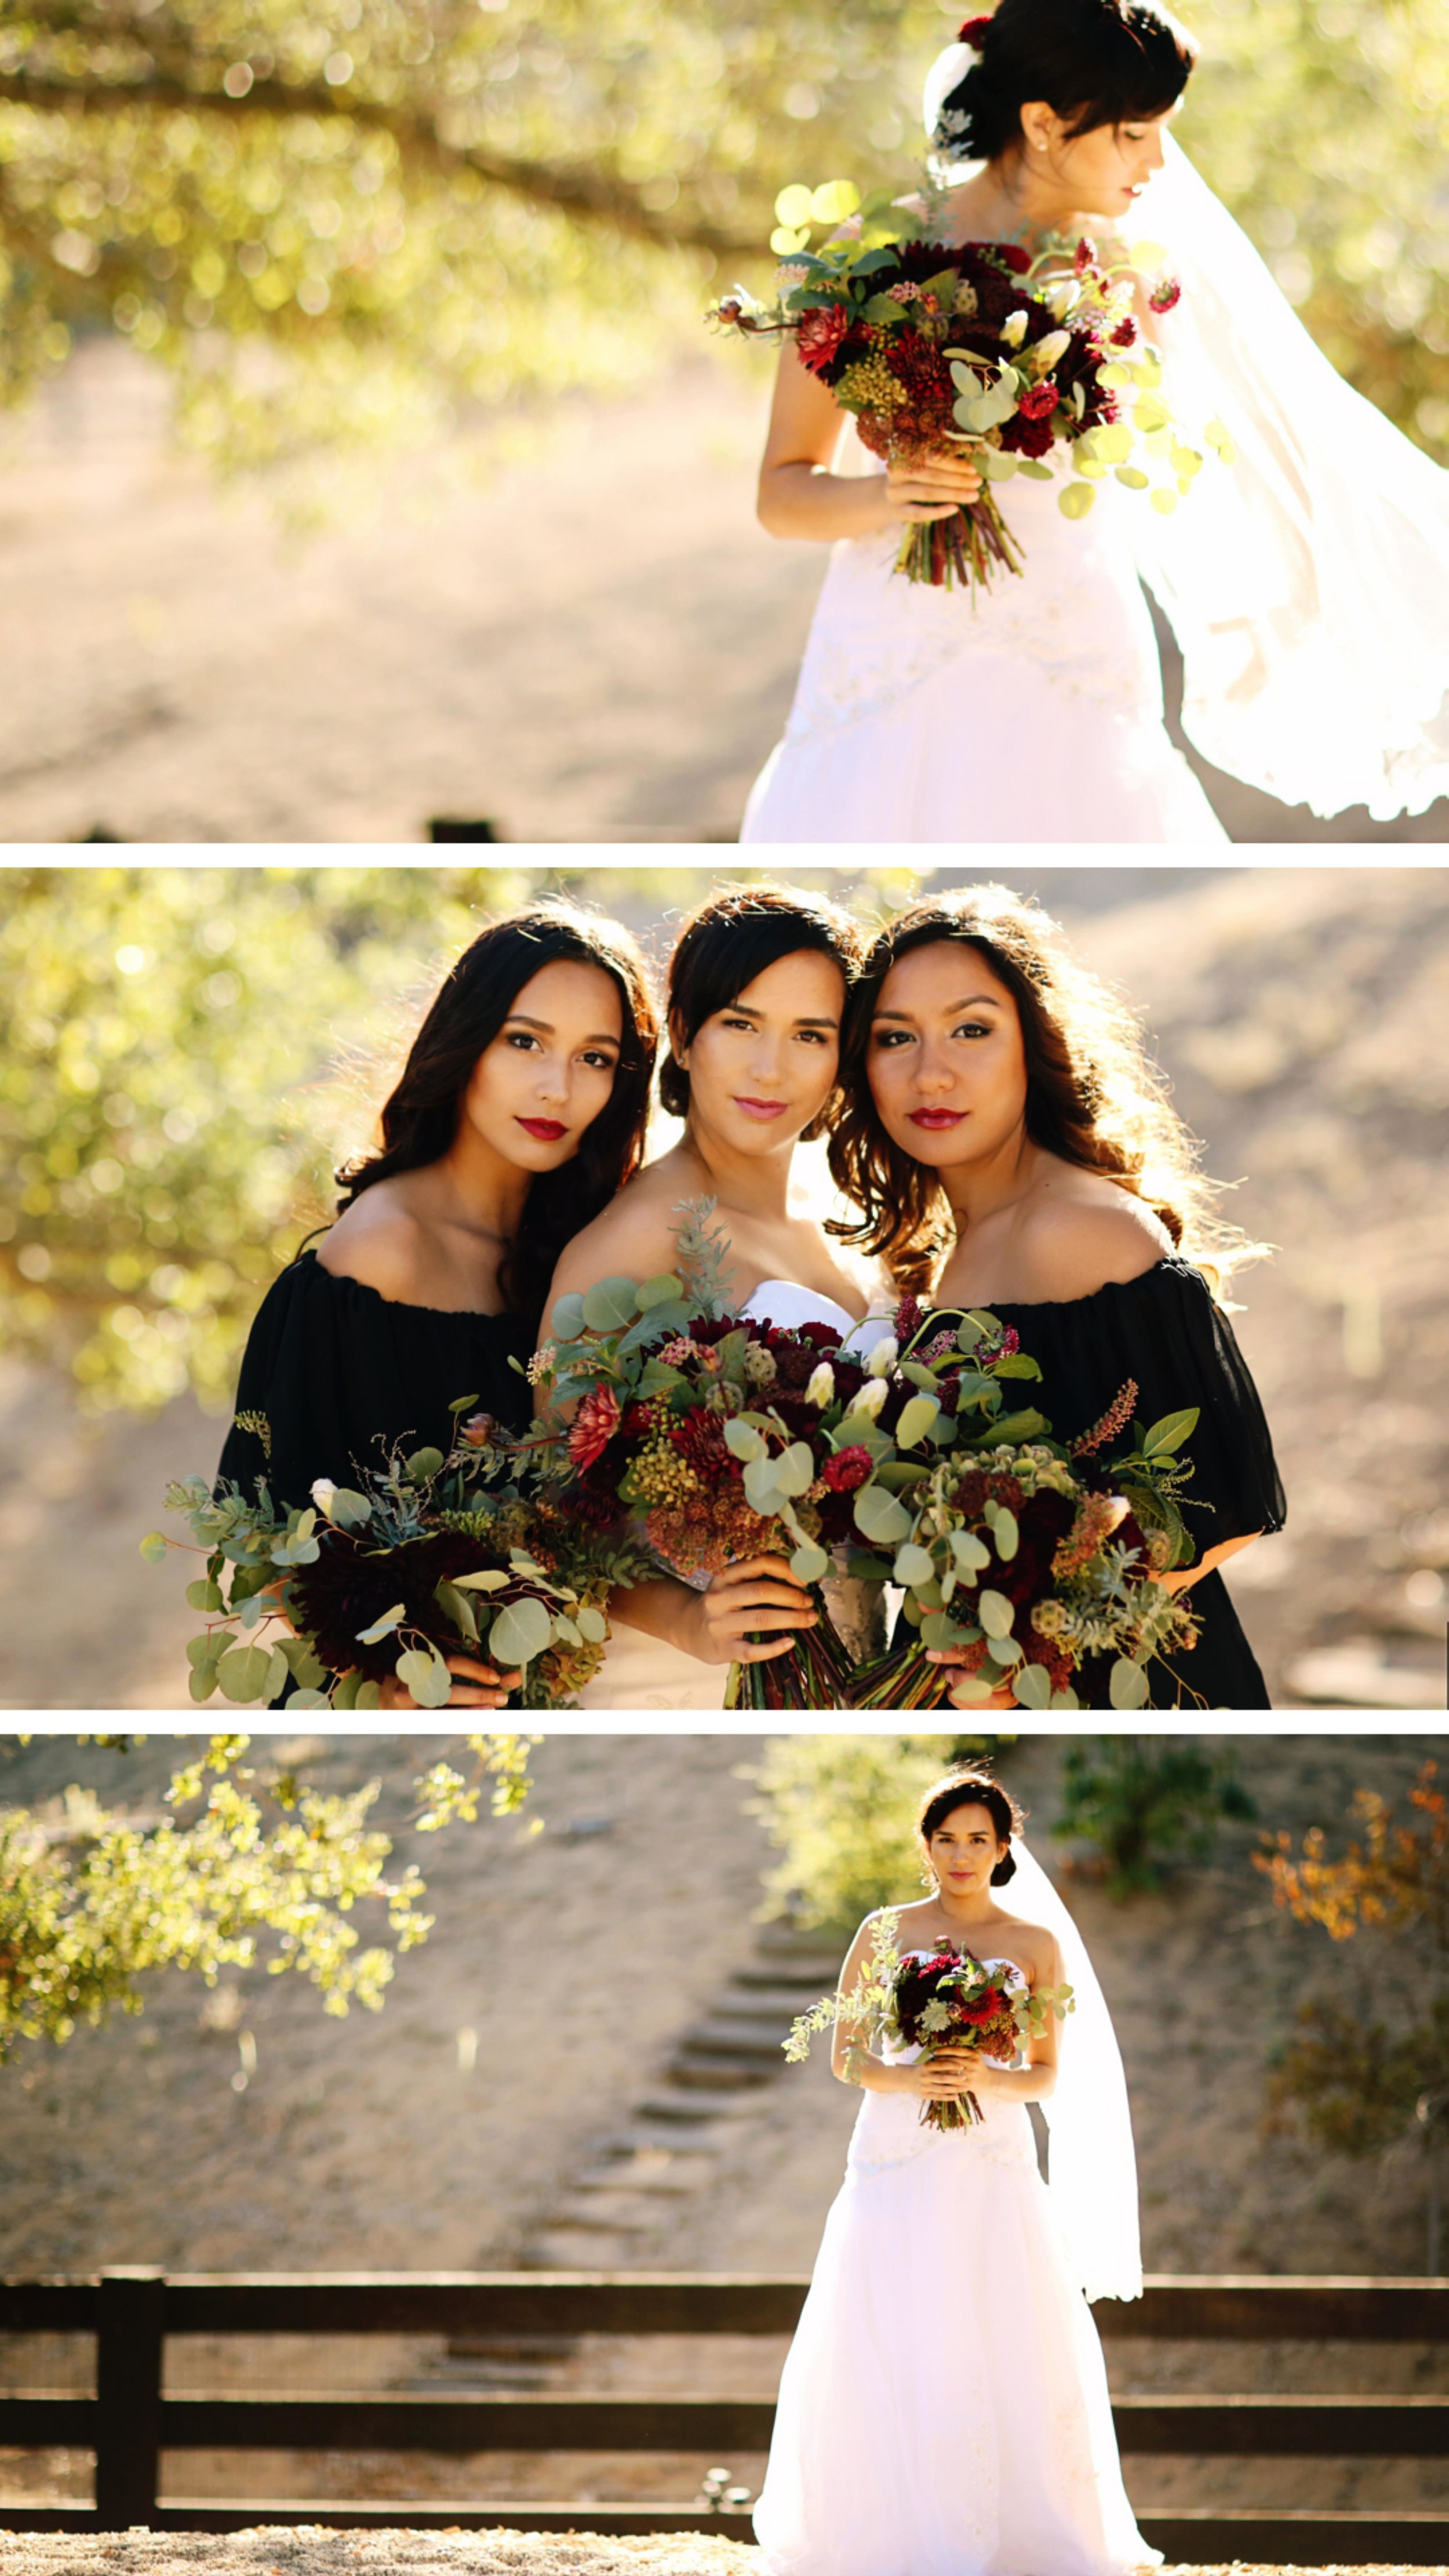 This is a marsala styled shoot done at  Chateau Adare  in Murrieta. The bride wore a strapless dress from  Davids Bridal.  The brides maids wore black dresses from Davids Bridal. The floral was done by  Bleudog Floral . All photography was done by  Bleudog Photography.